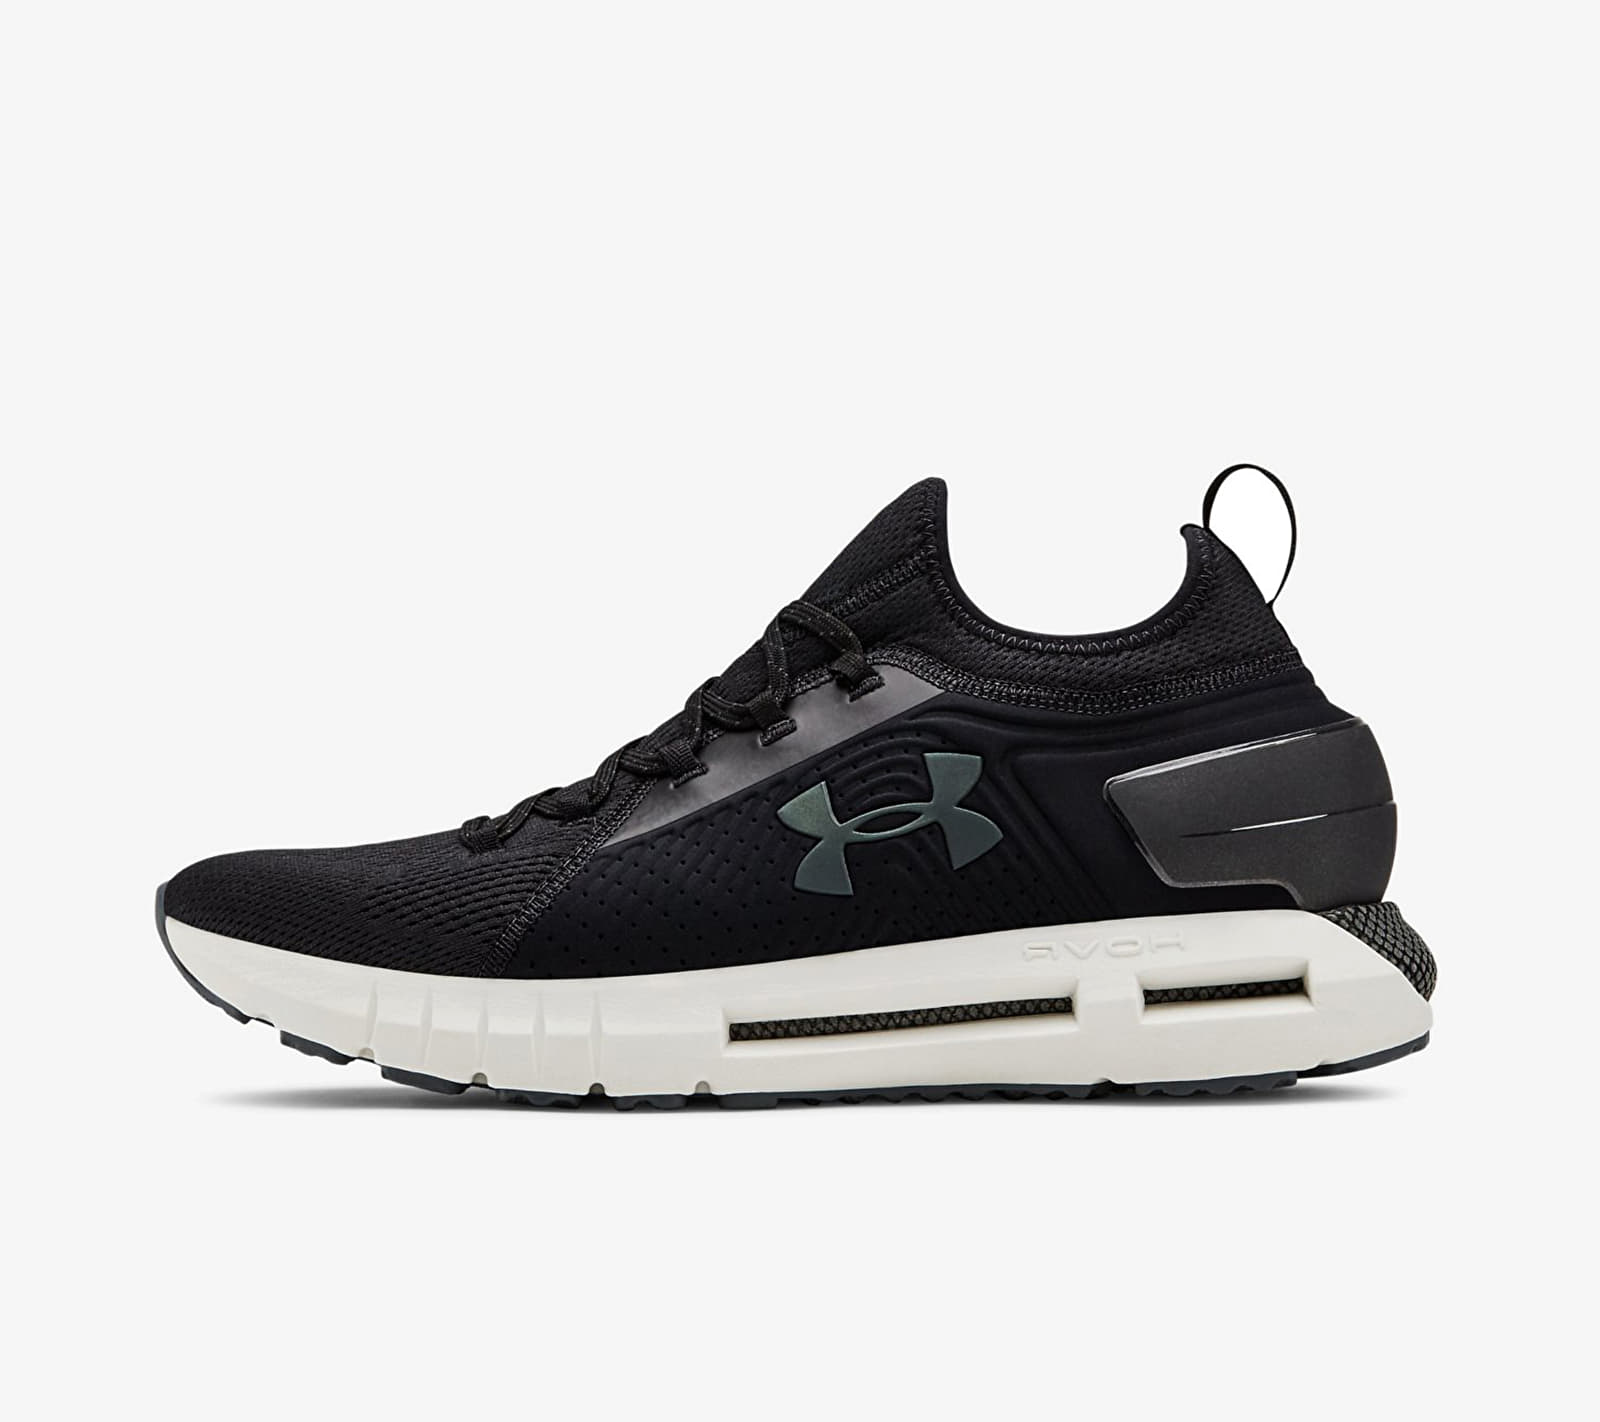 Under Armour HOVR Phantom SE Black/ Onyx White/ Black EUR 42.5